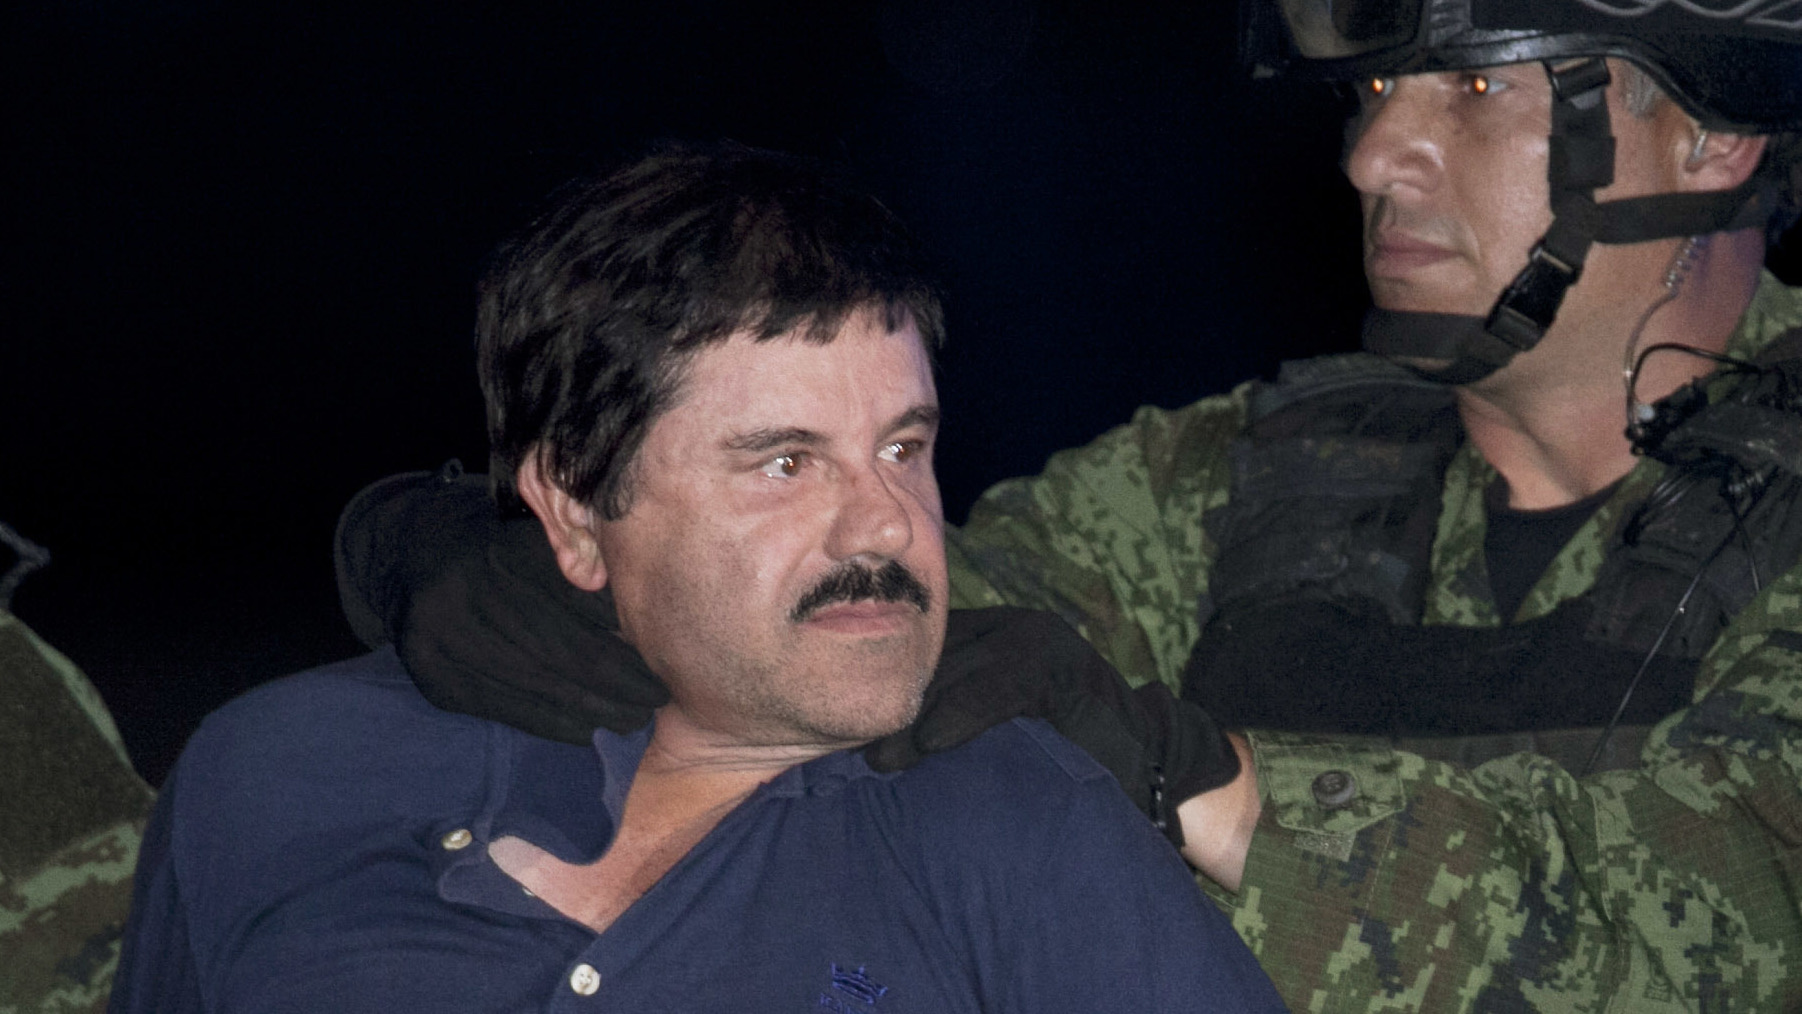 El Chapo Is A Step Closer To U.S. Extradition, After Judge Denies Appeal